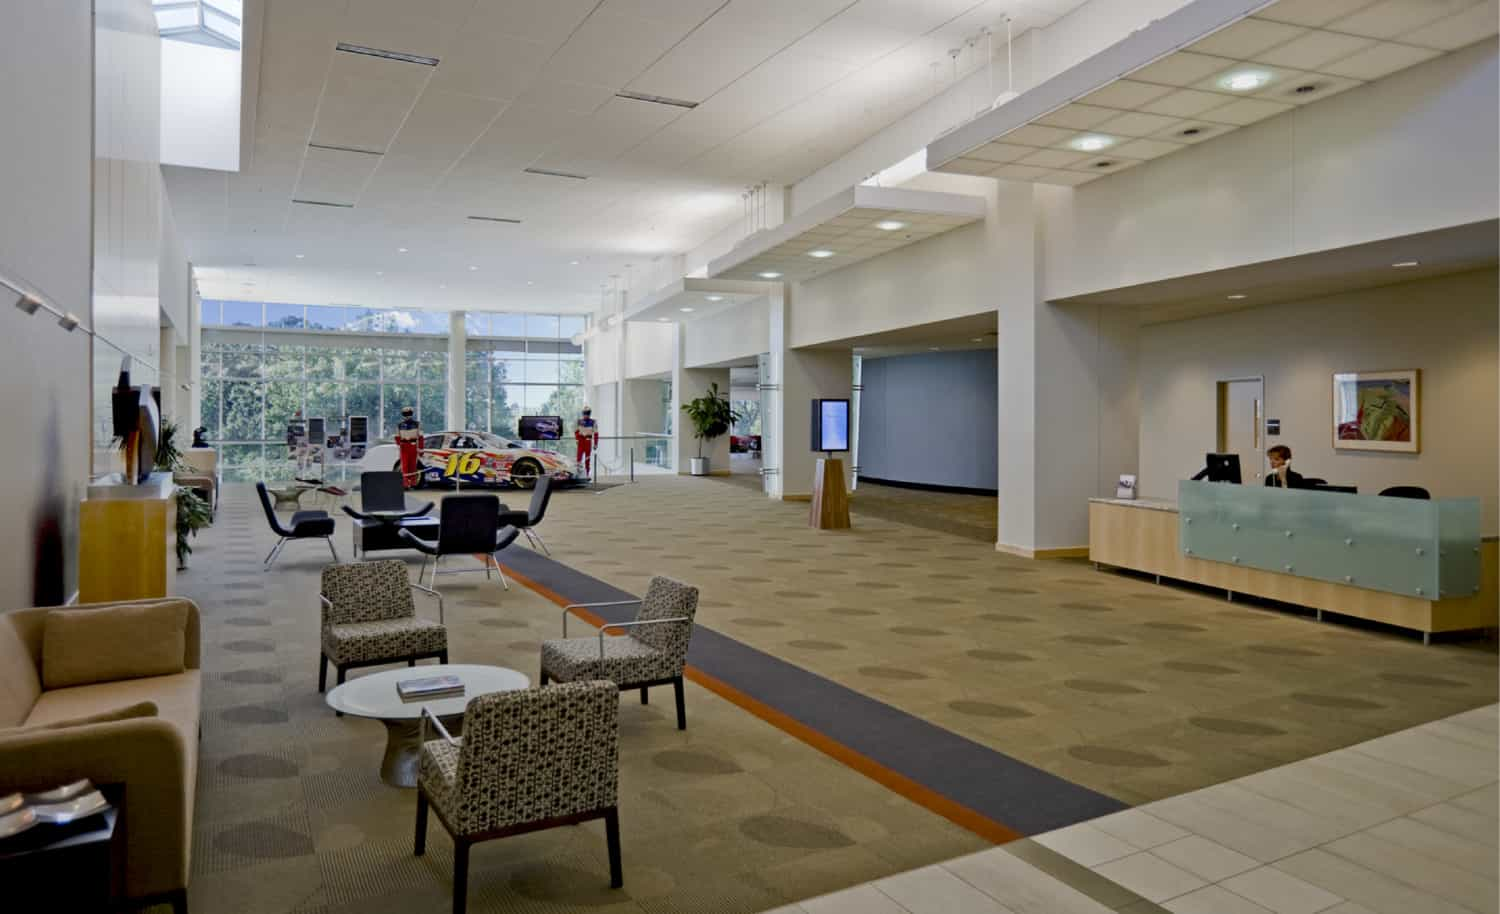 FORTUNE 500 CORPORATION INNOVATION CENTER